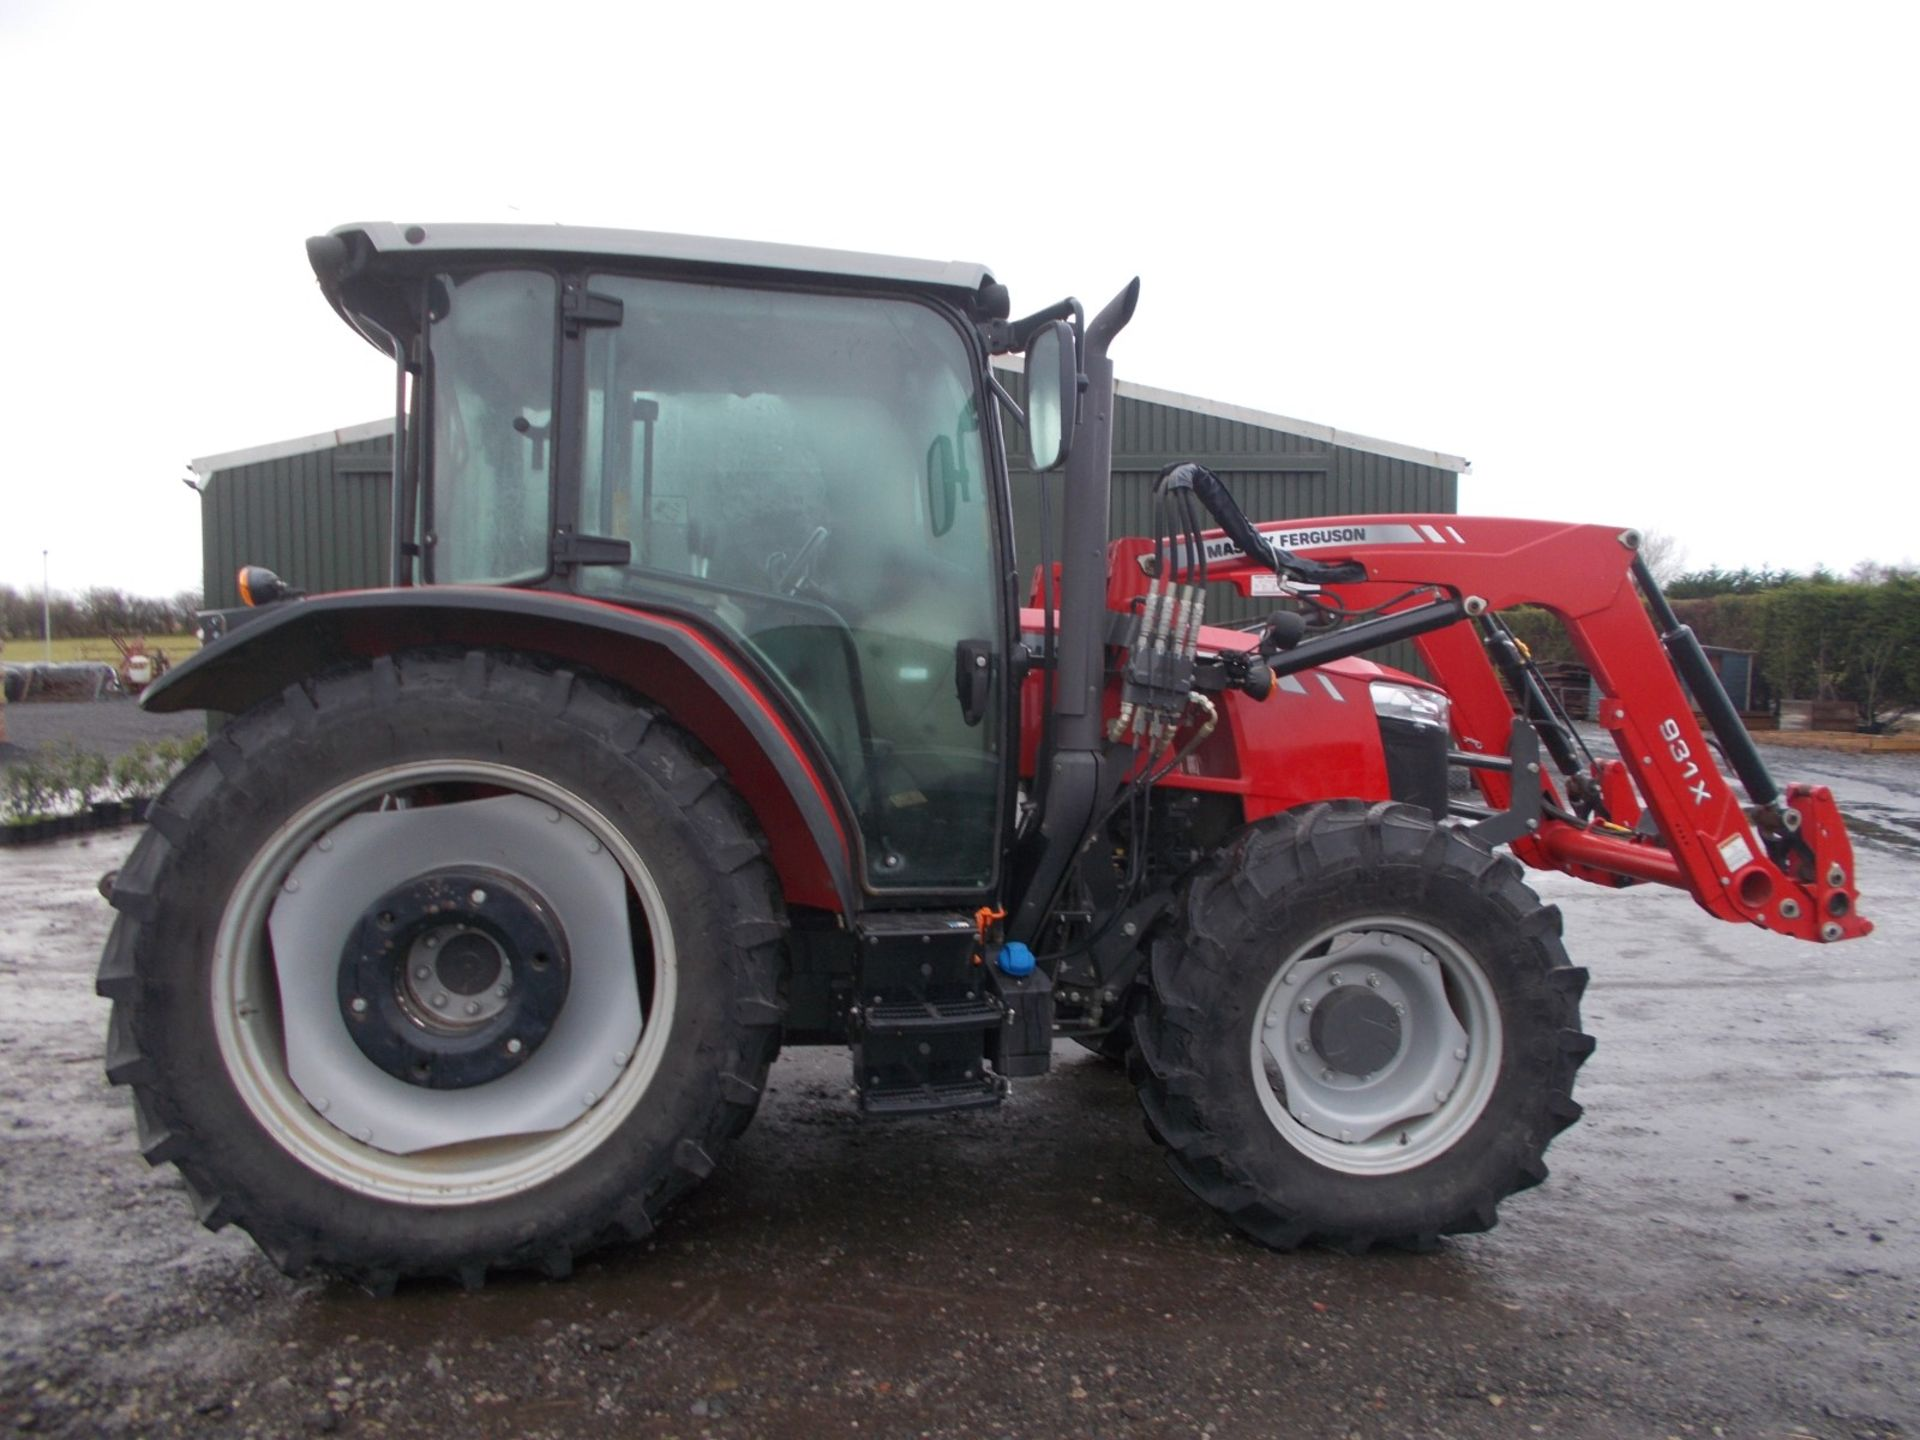 2018 MASSEY FERGUSON 4710 4WD TRACTOR WITH LOADER, AGCO 3.3 LITRE 3CYL TURBO DIESEL *PLUS VAT*